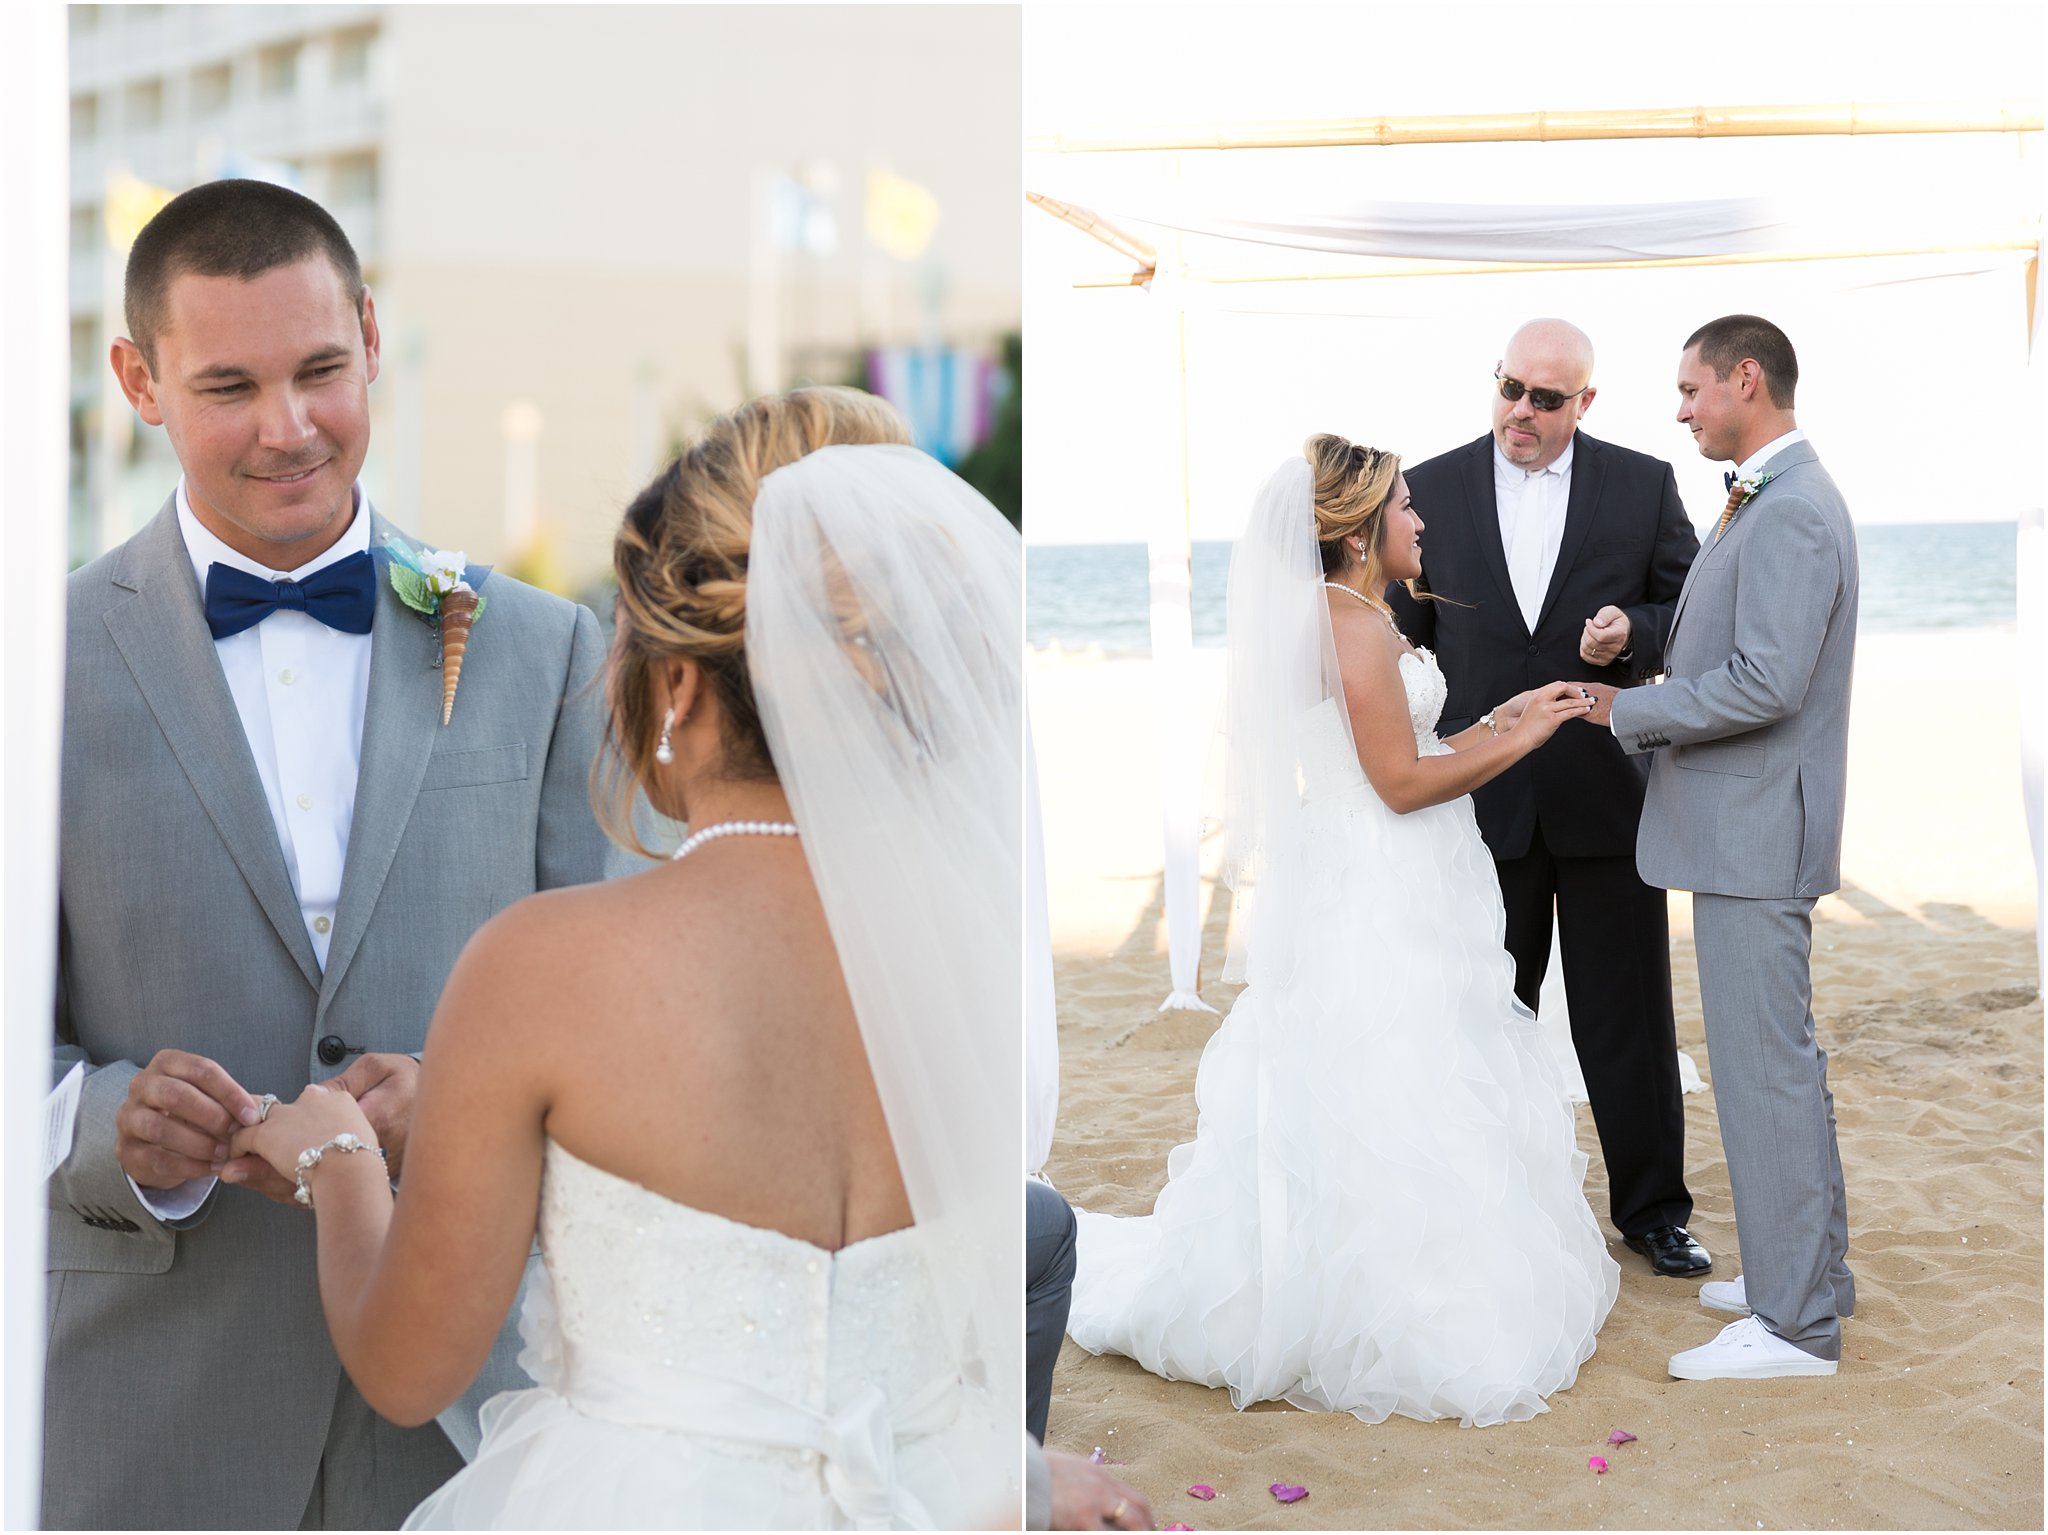 jessica_ryan_photography_wedding_virginia_beach_oceanfront_holiday_inn_north_suites_hotel_wedding_0750